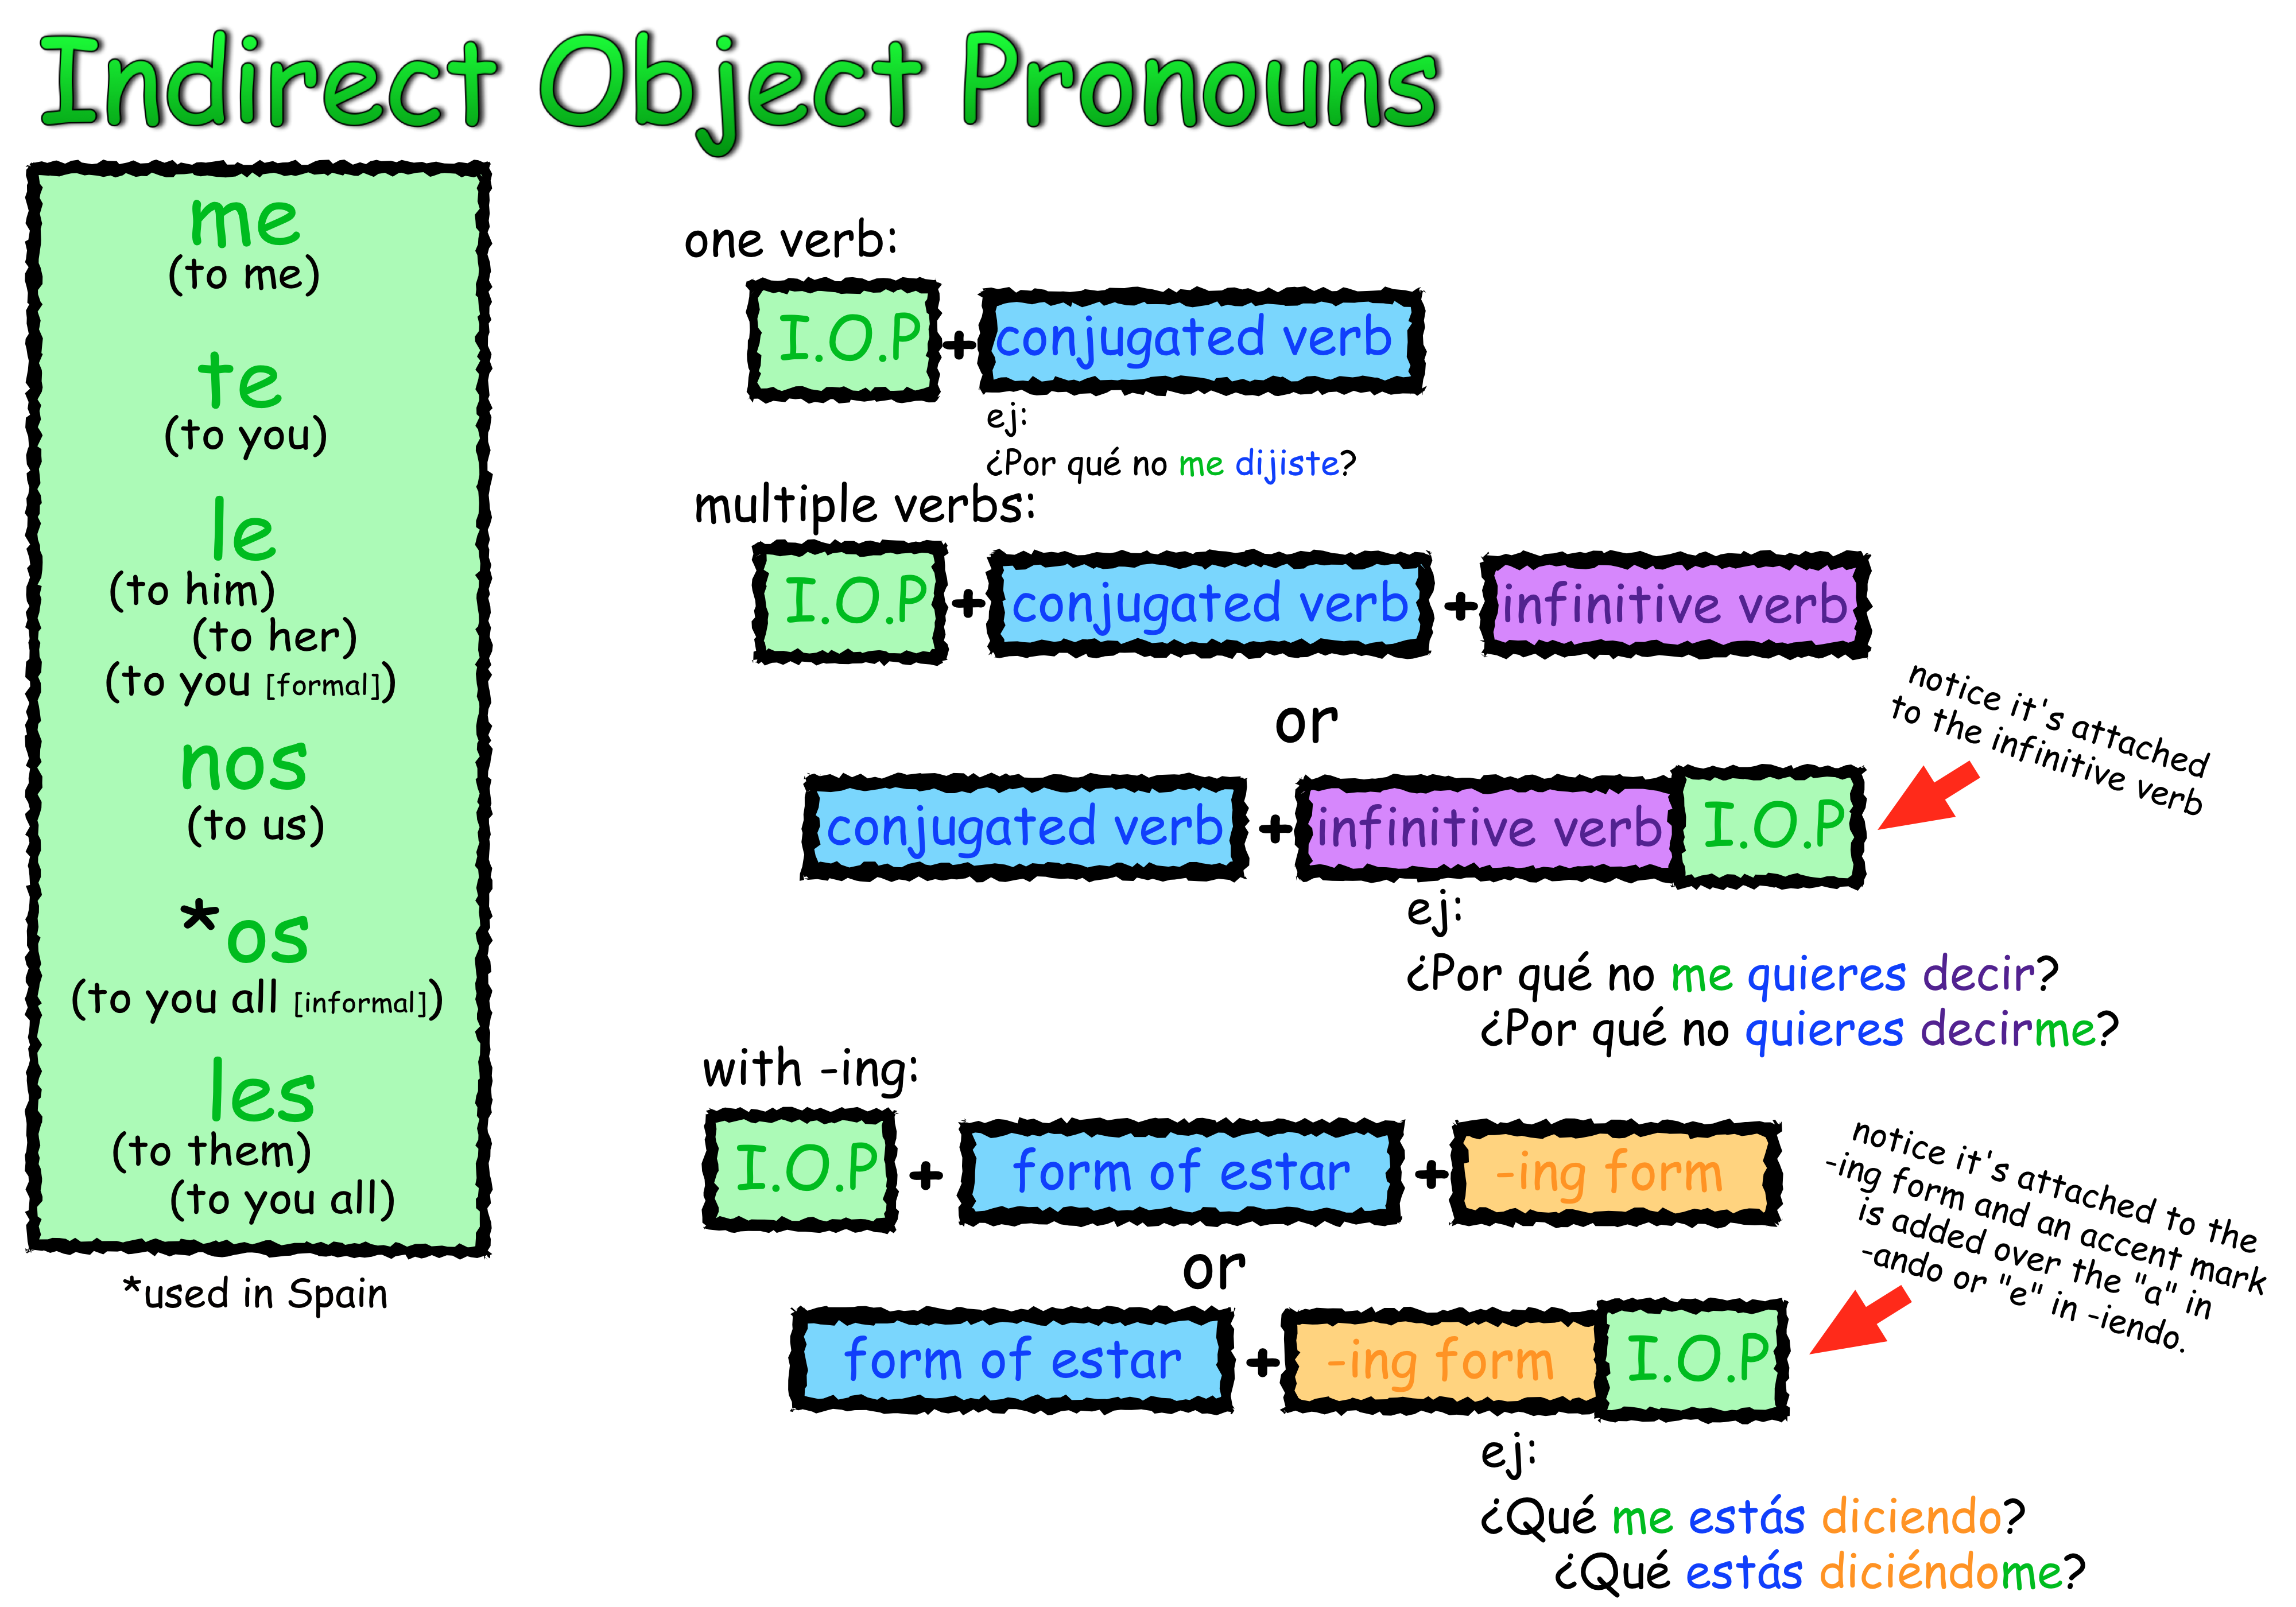 Indirect Object Pronouns Chart